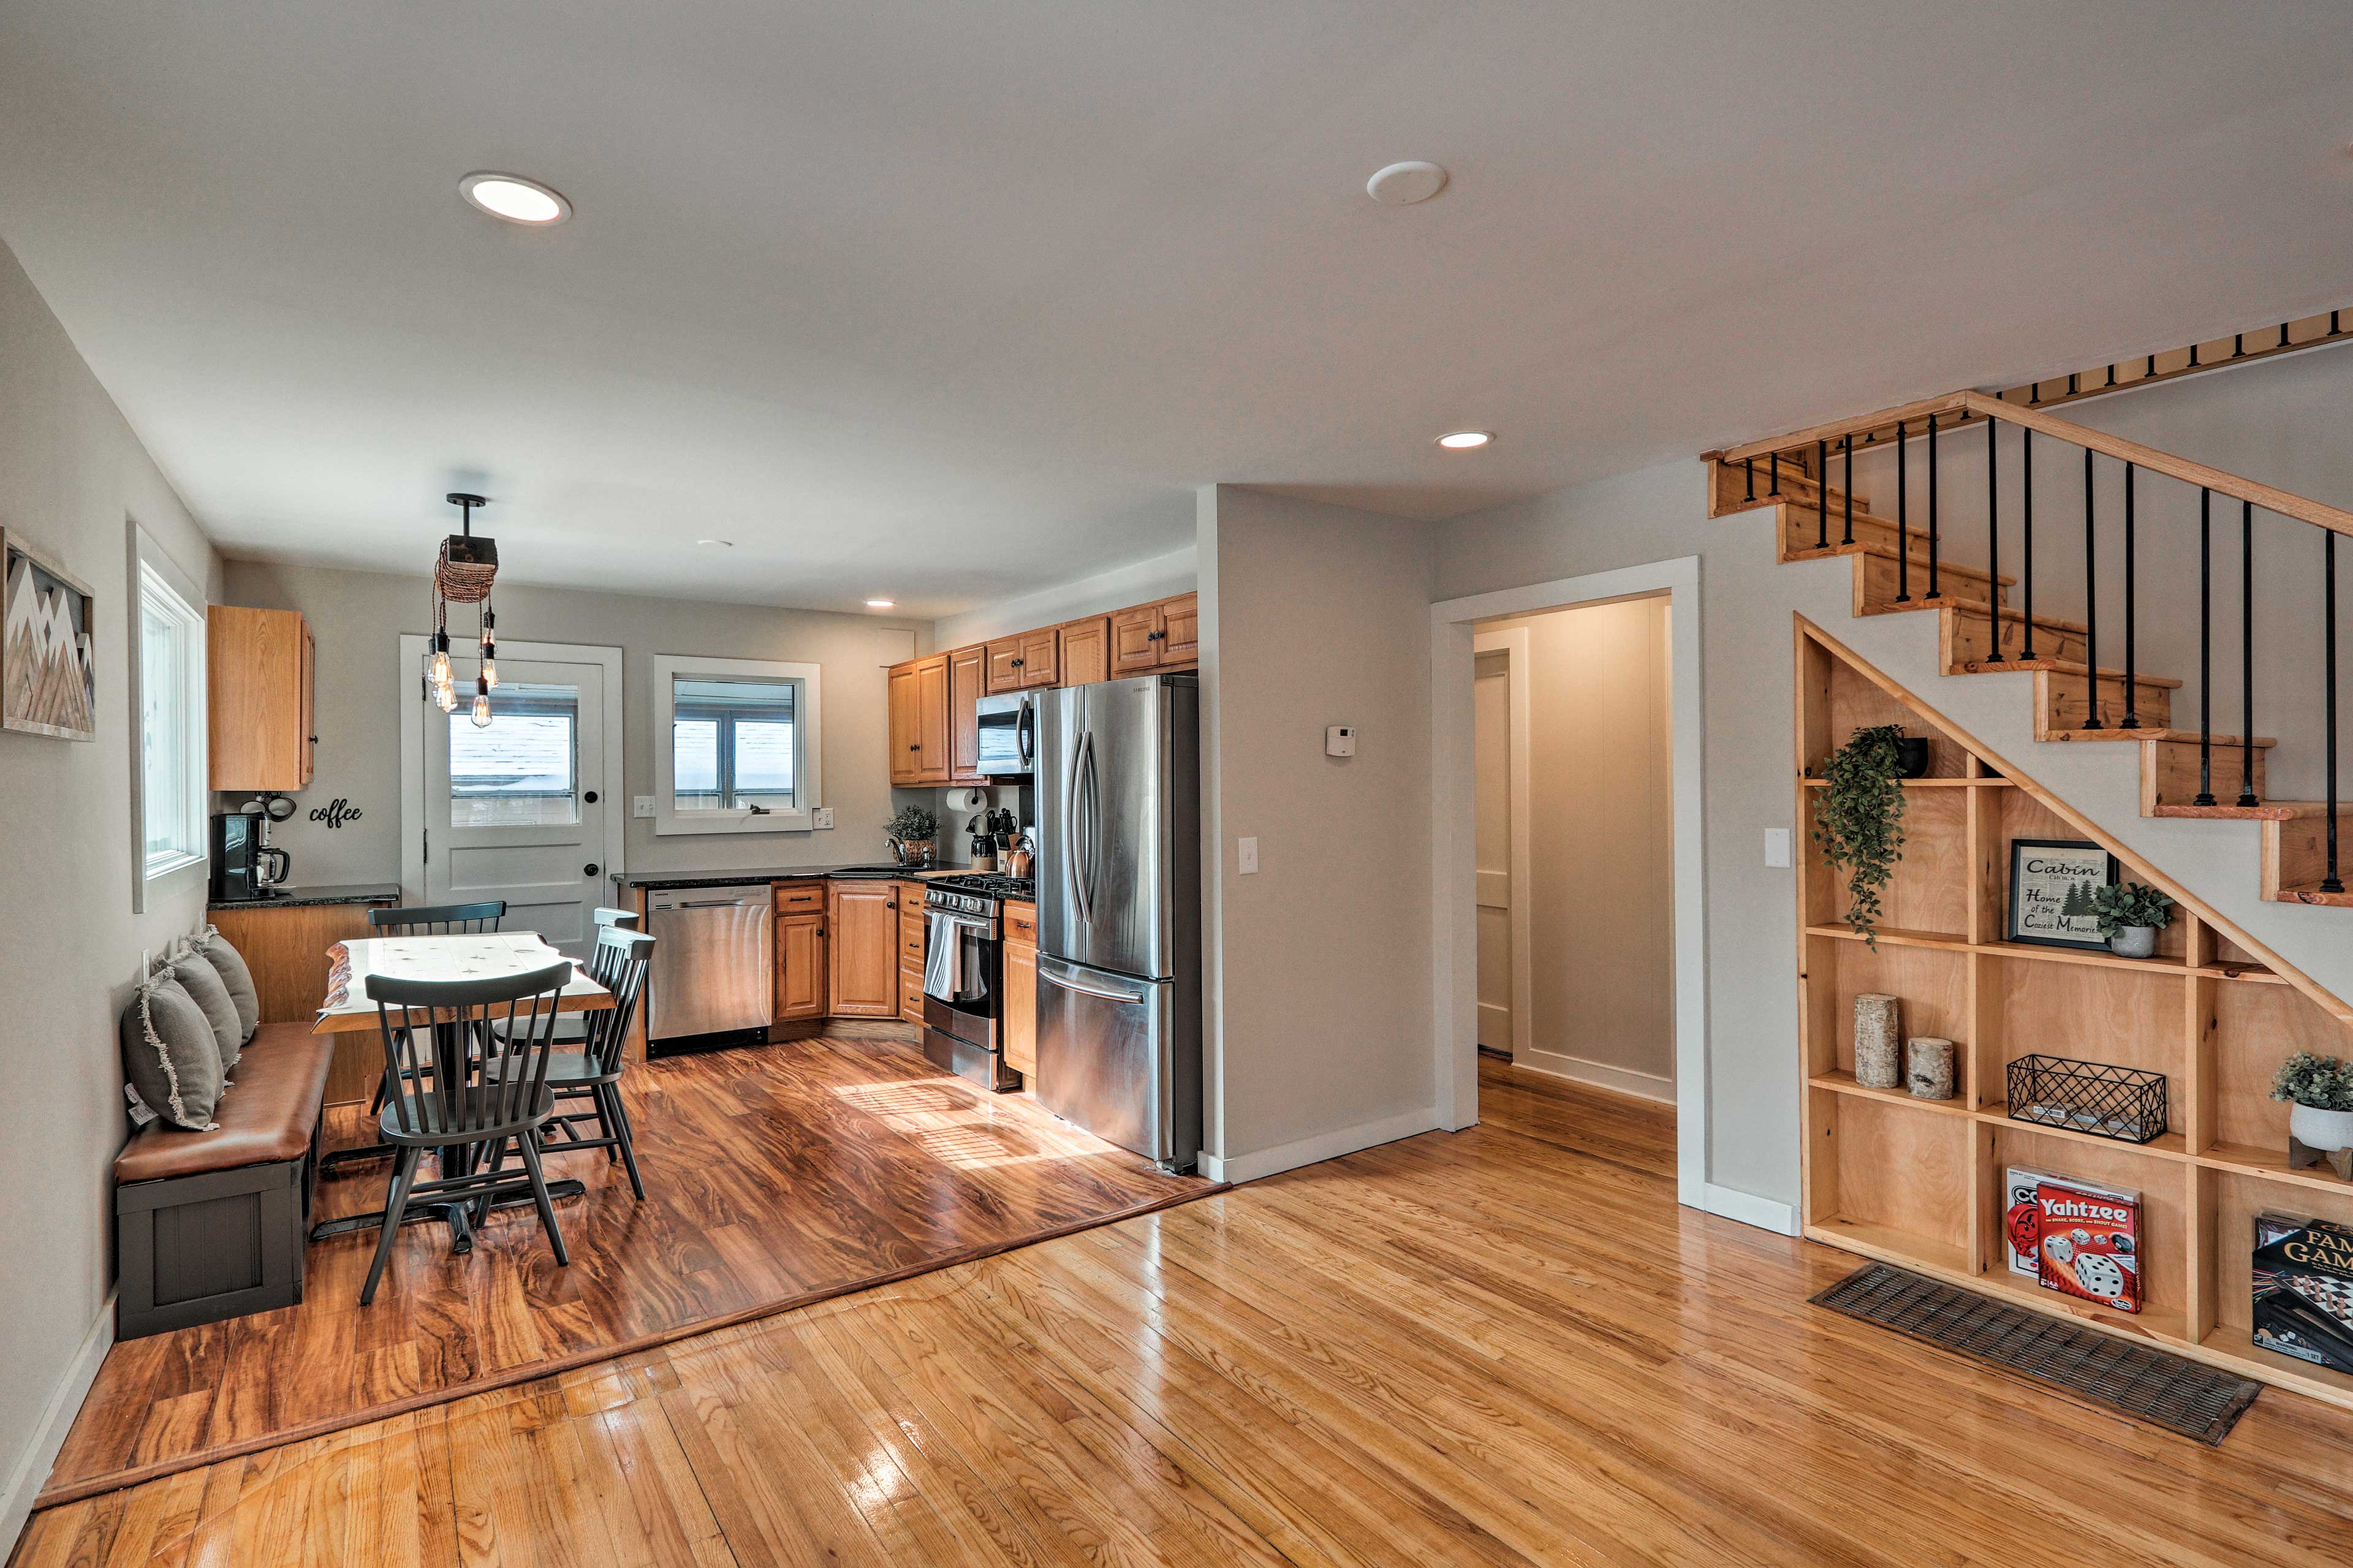 The spacious layout offers plenty of room to spread out.